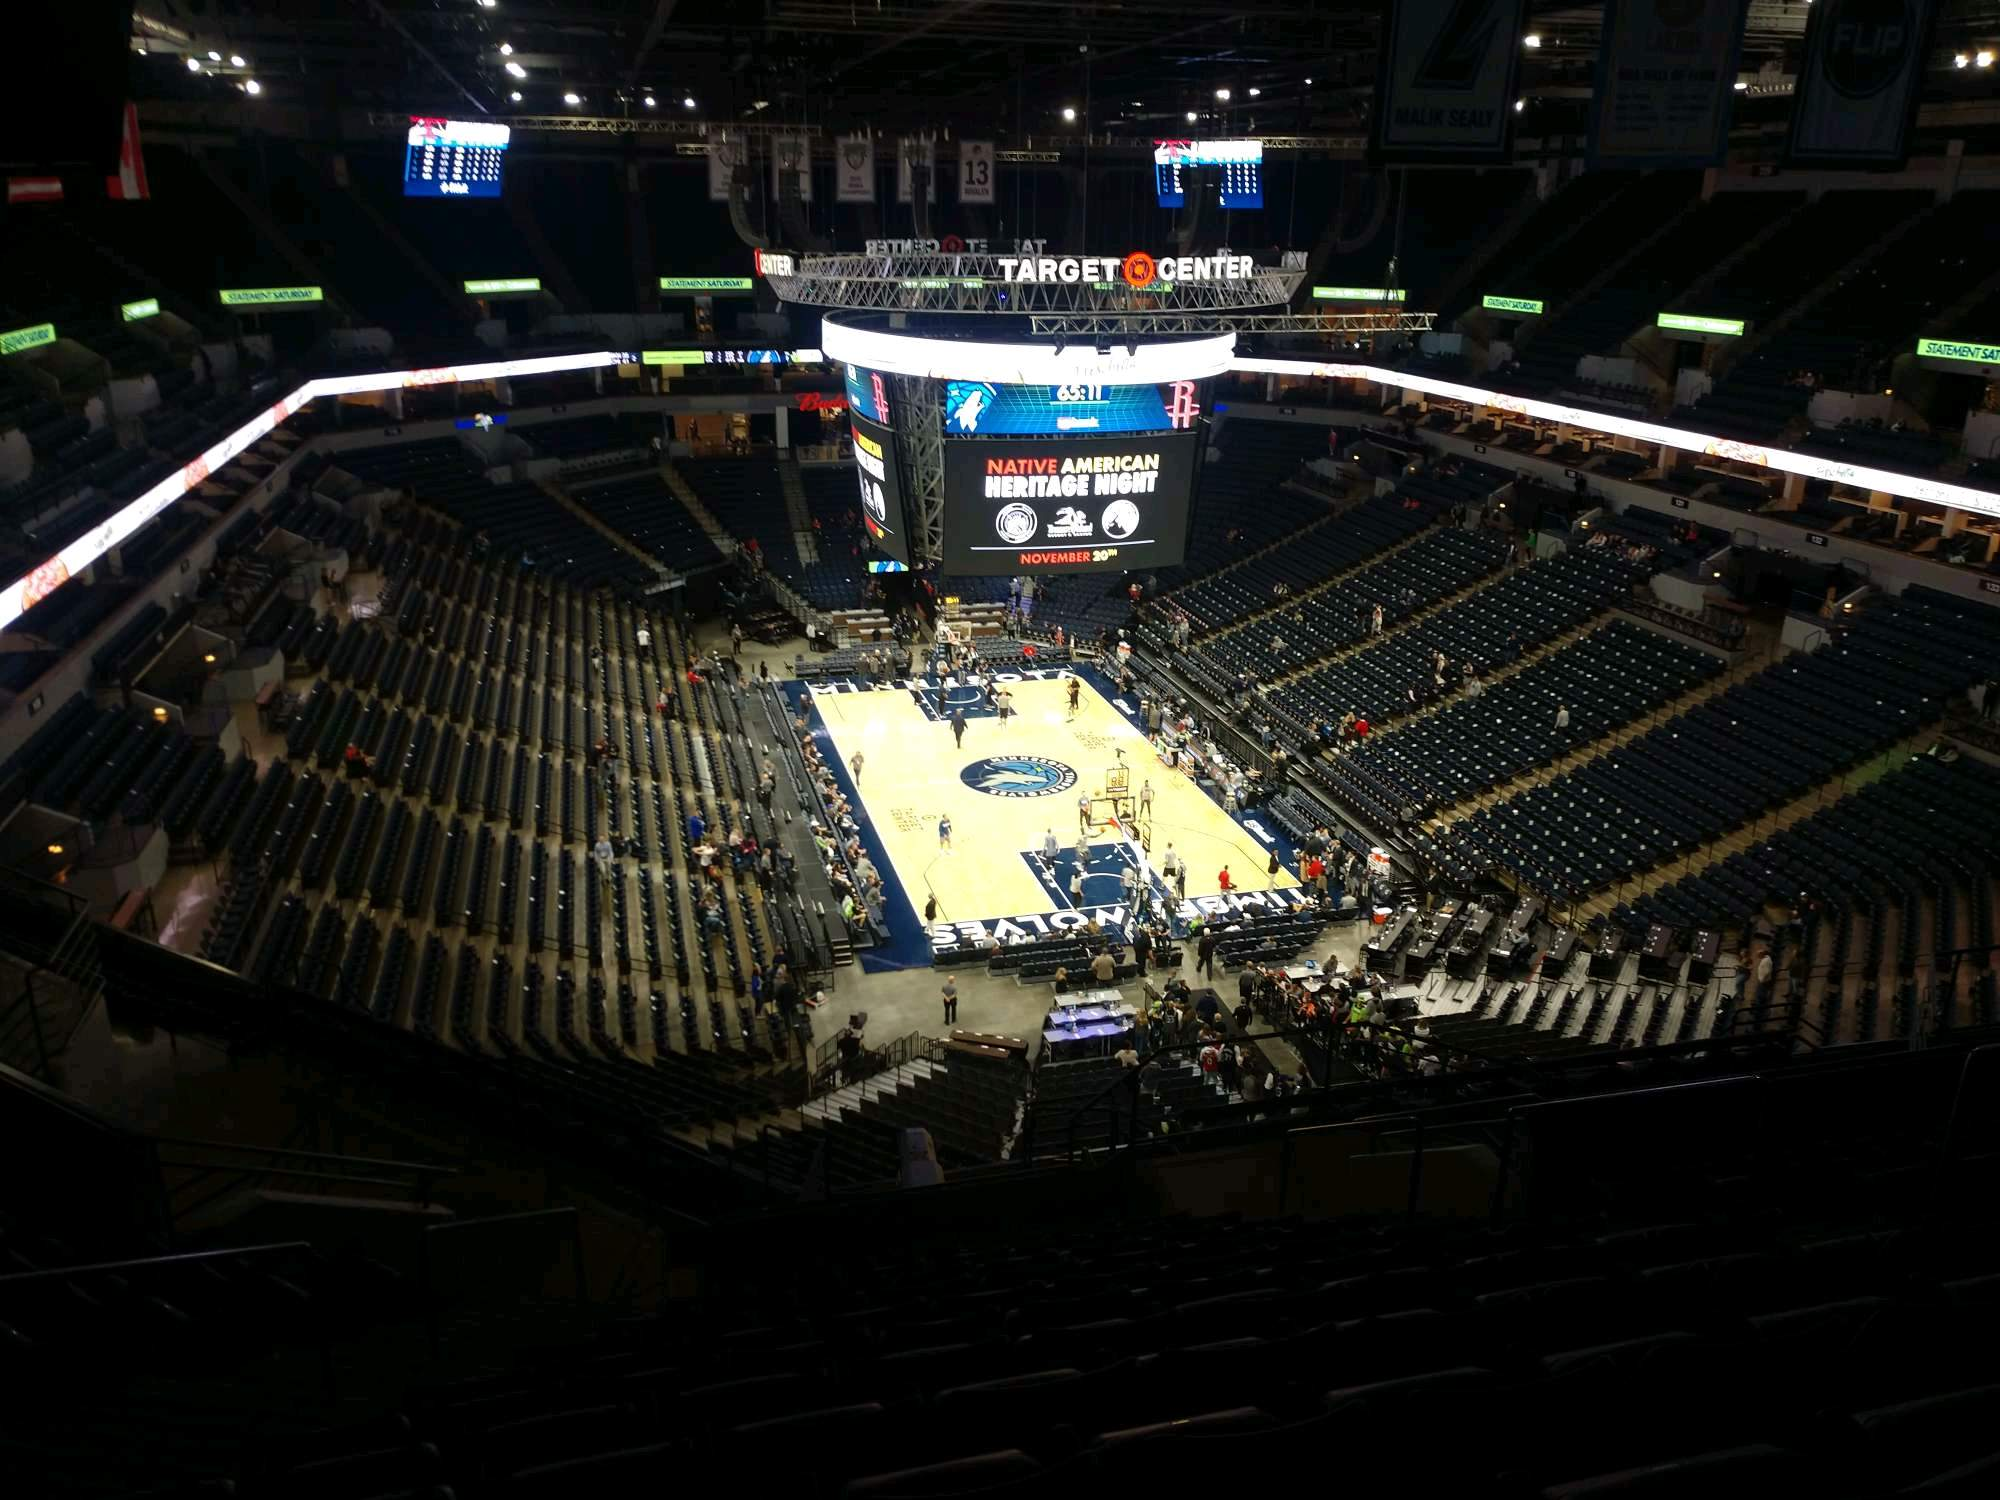 Target Center Section 203 Row S Seat 8